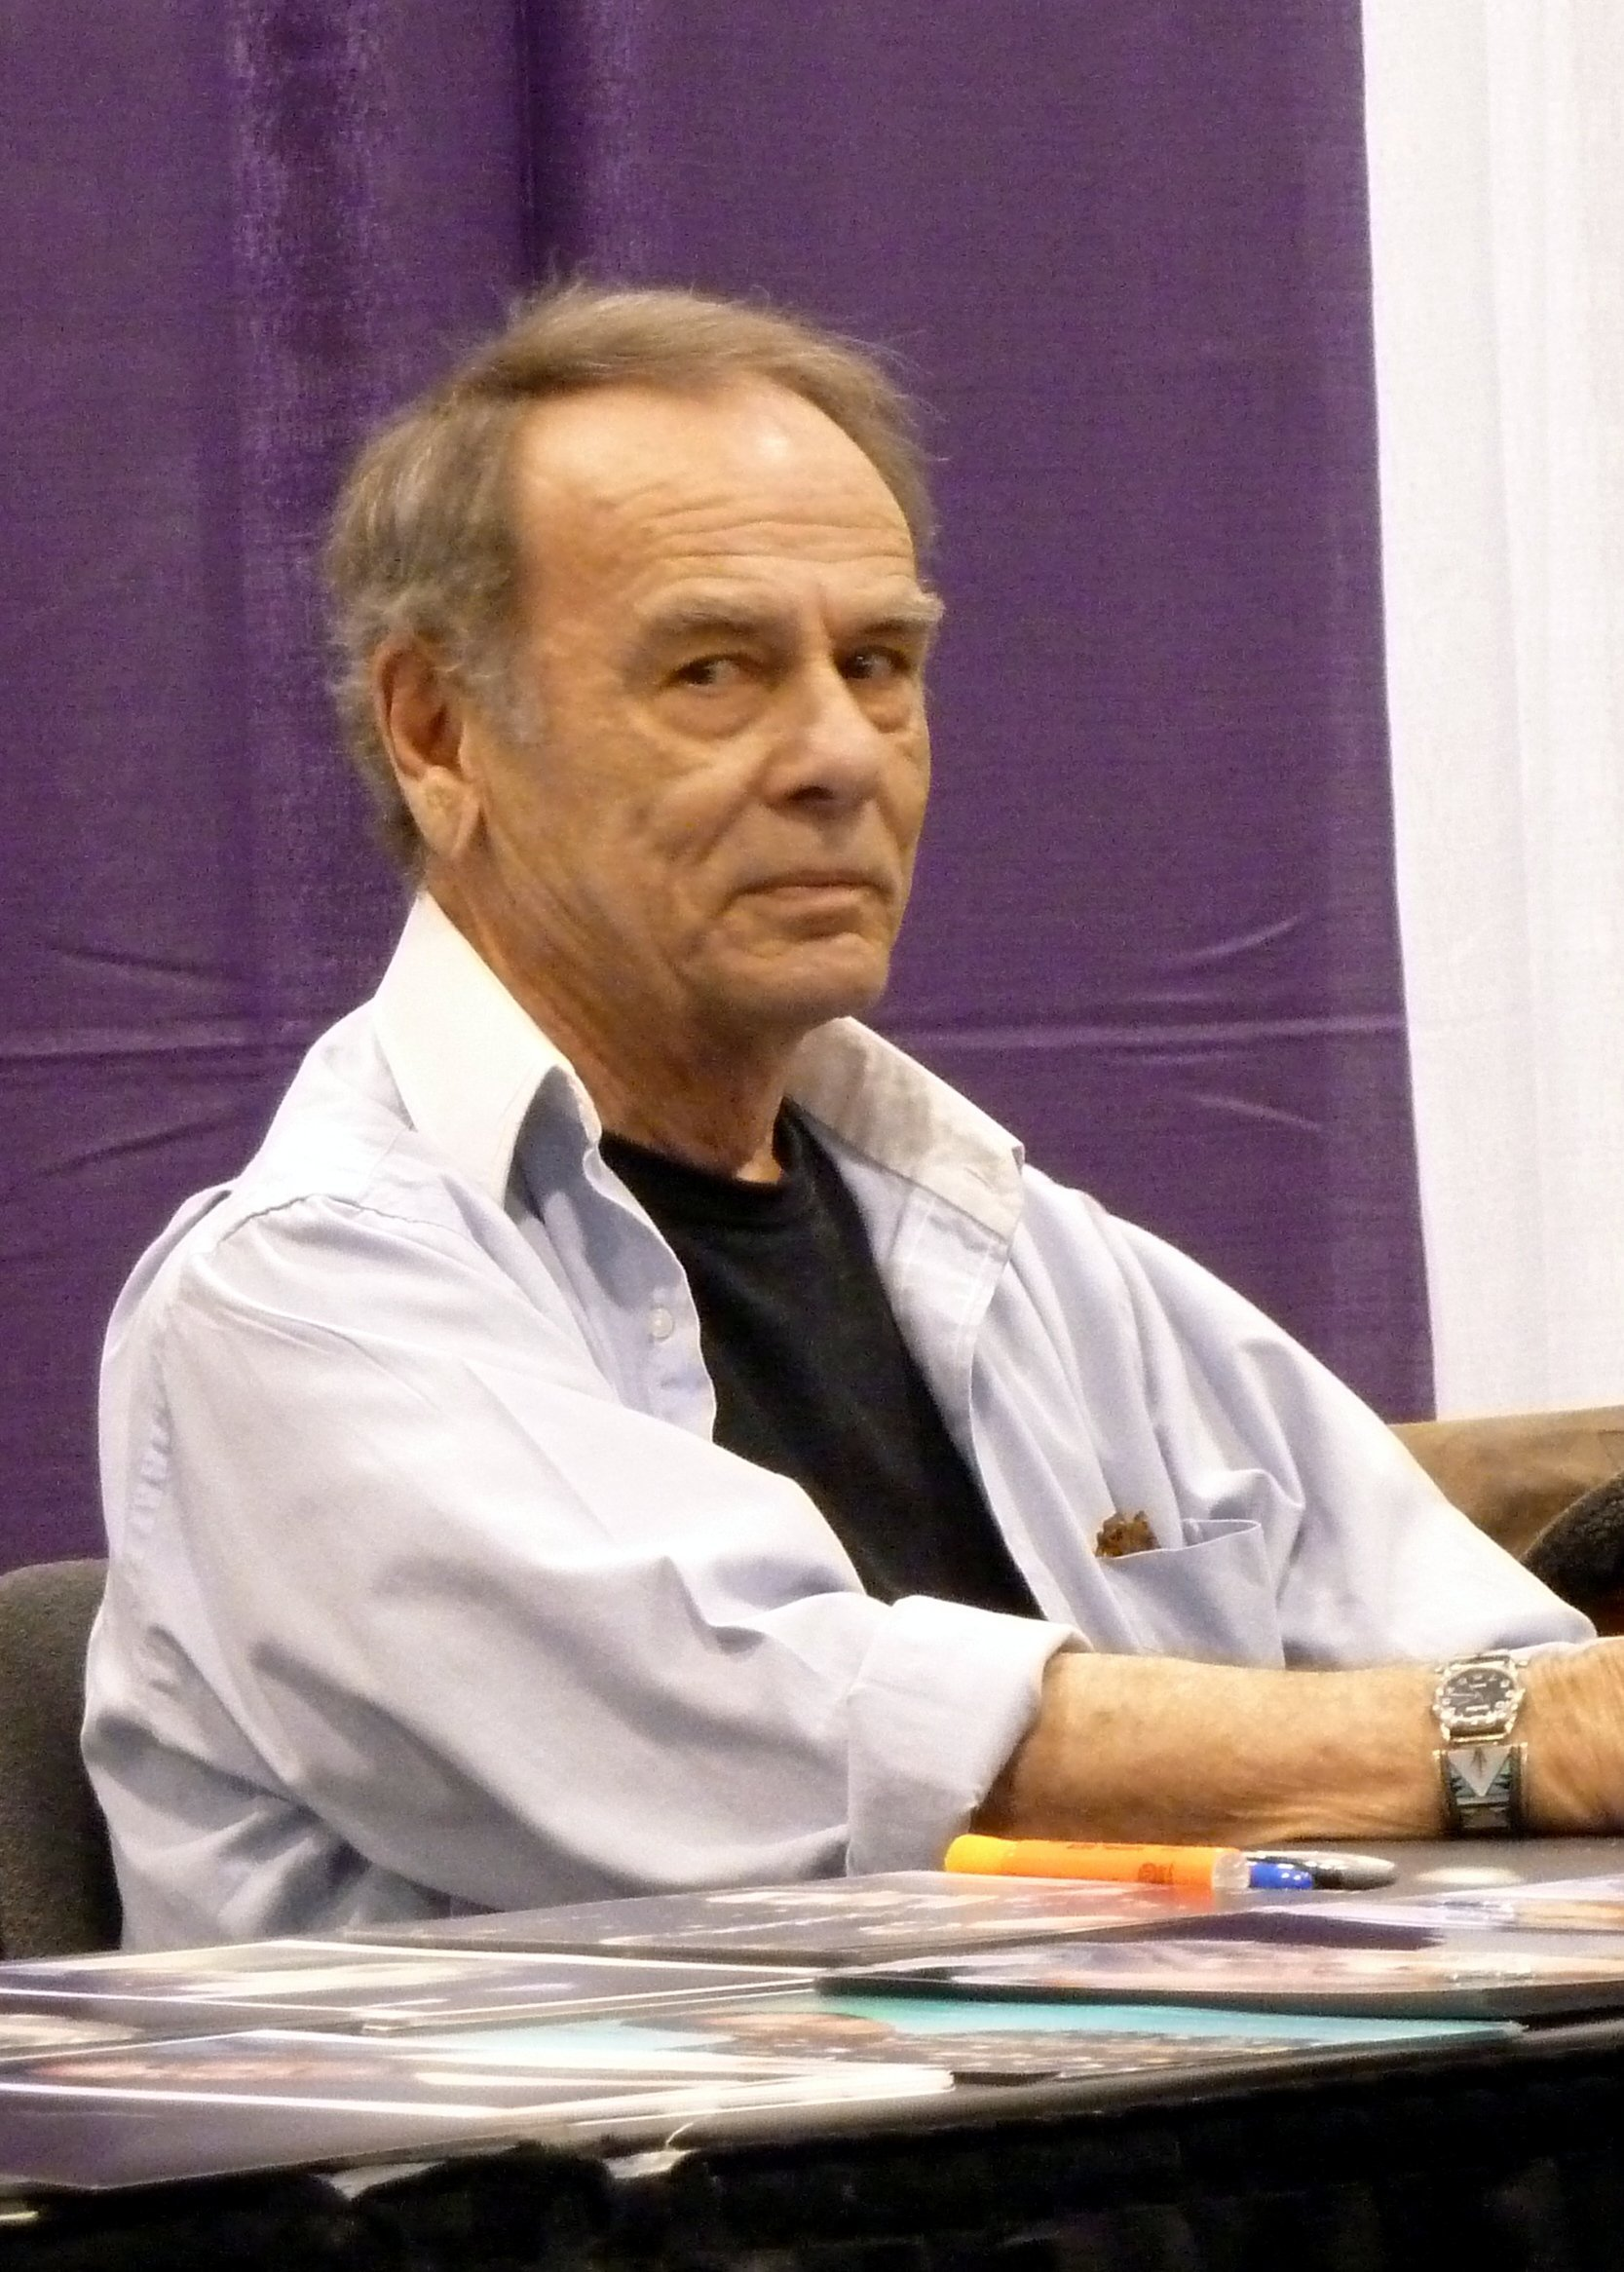 Dean Stockwell at Wizard World Toronto 2012. | Source: Wikipedia.